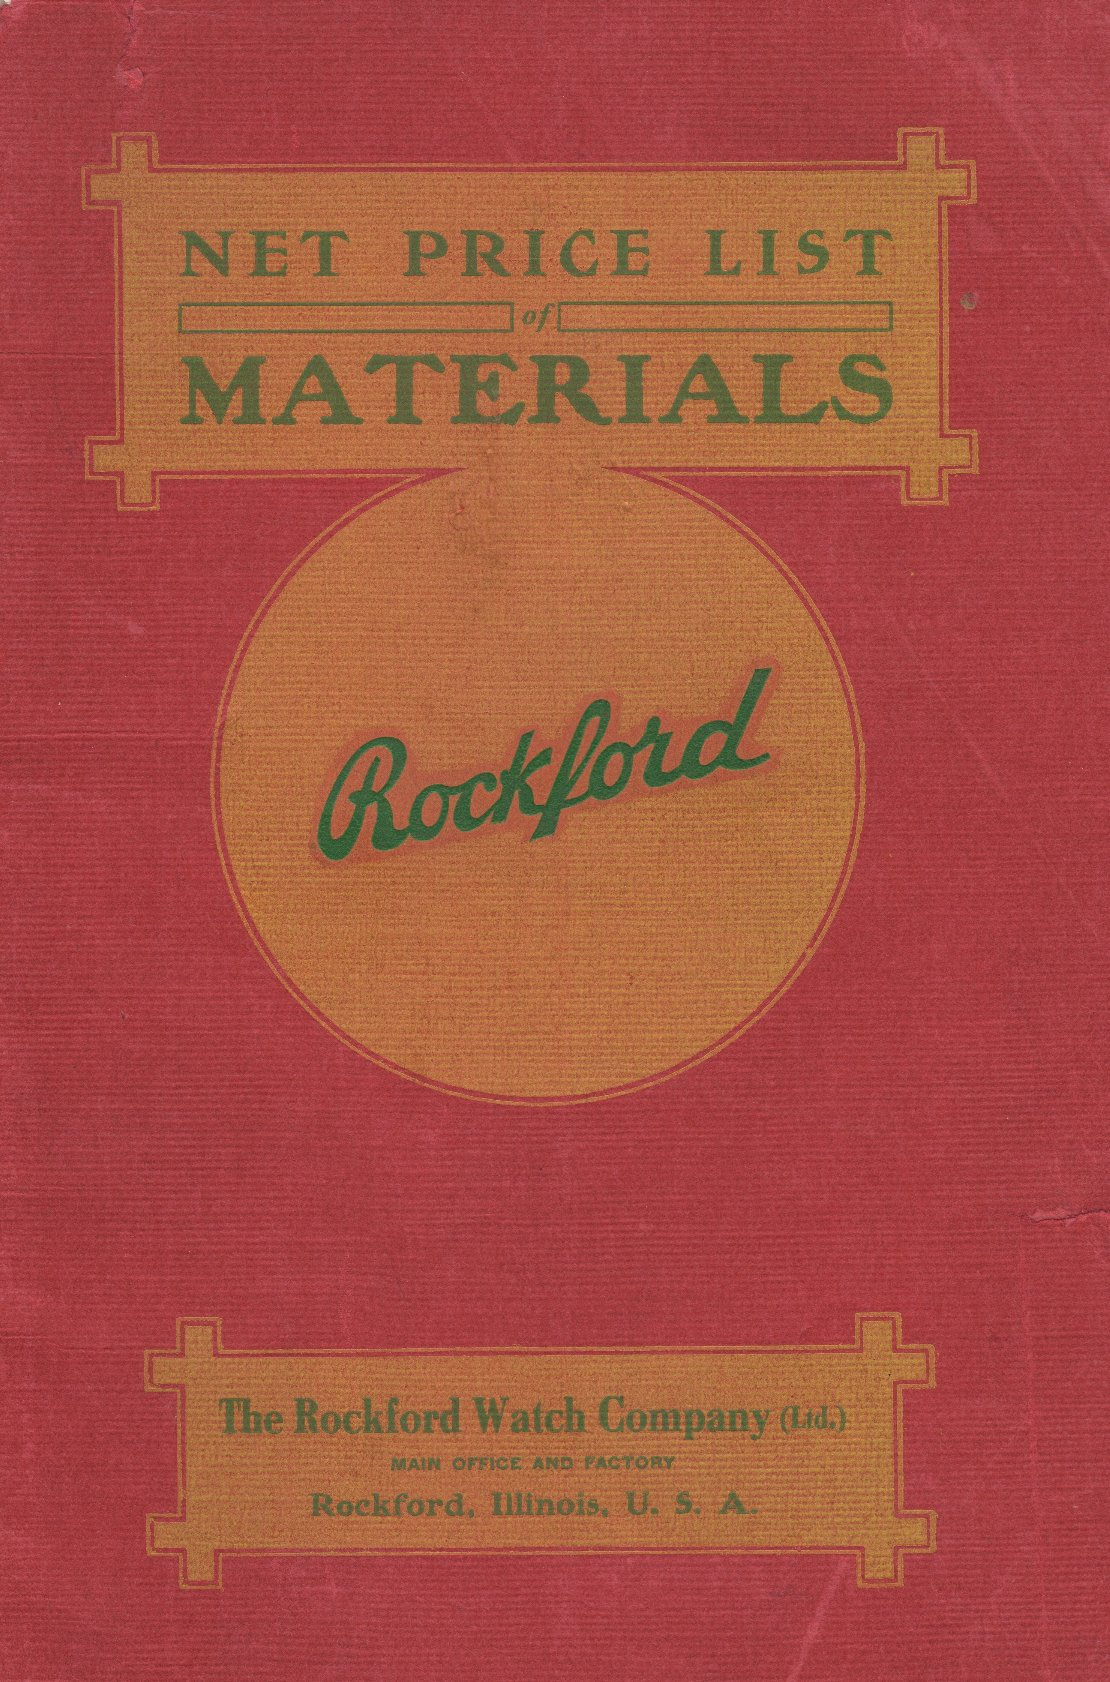 The Rockford Watch Company Net Price List of Materials (1907) Cover Image